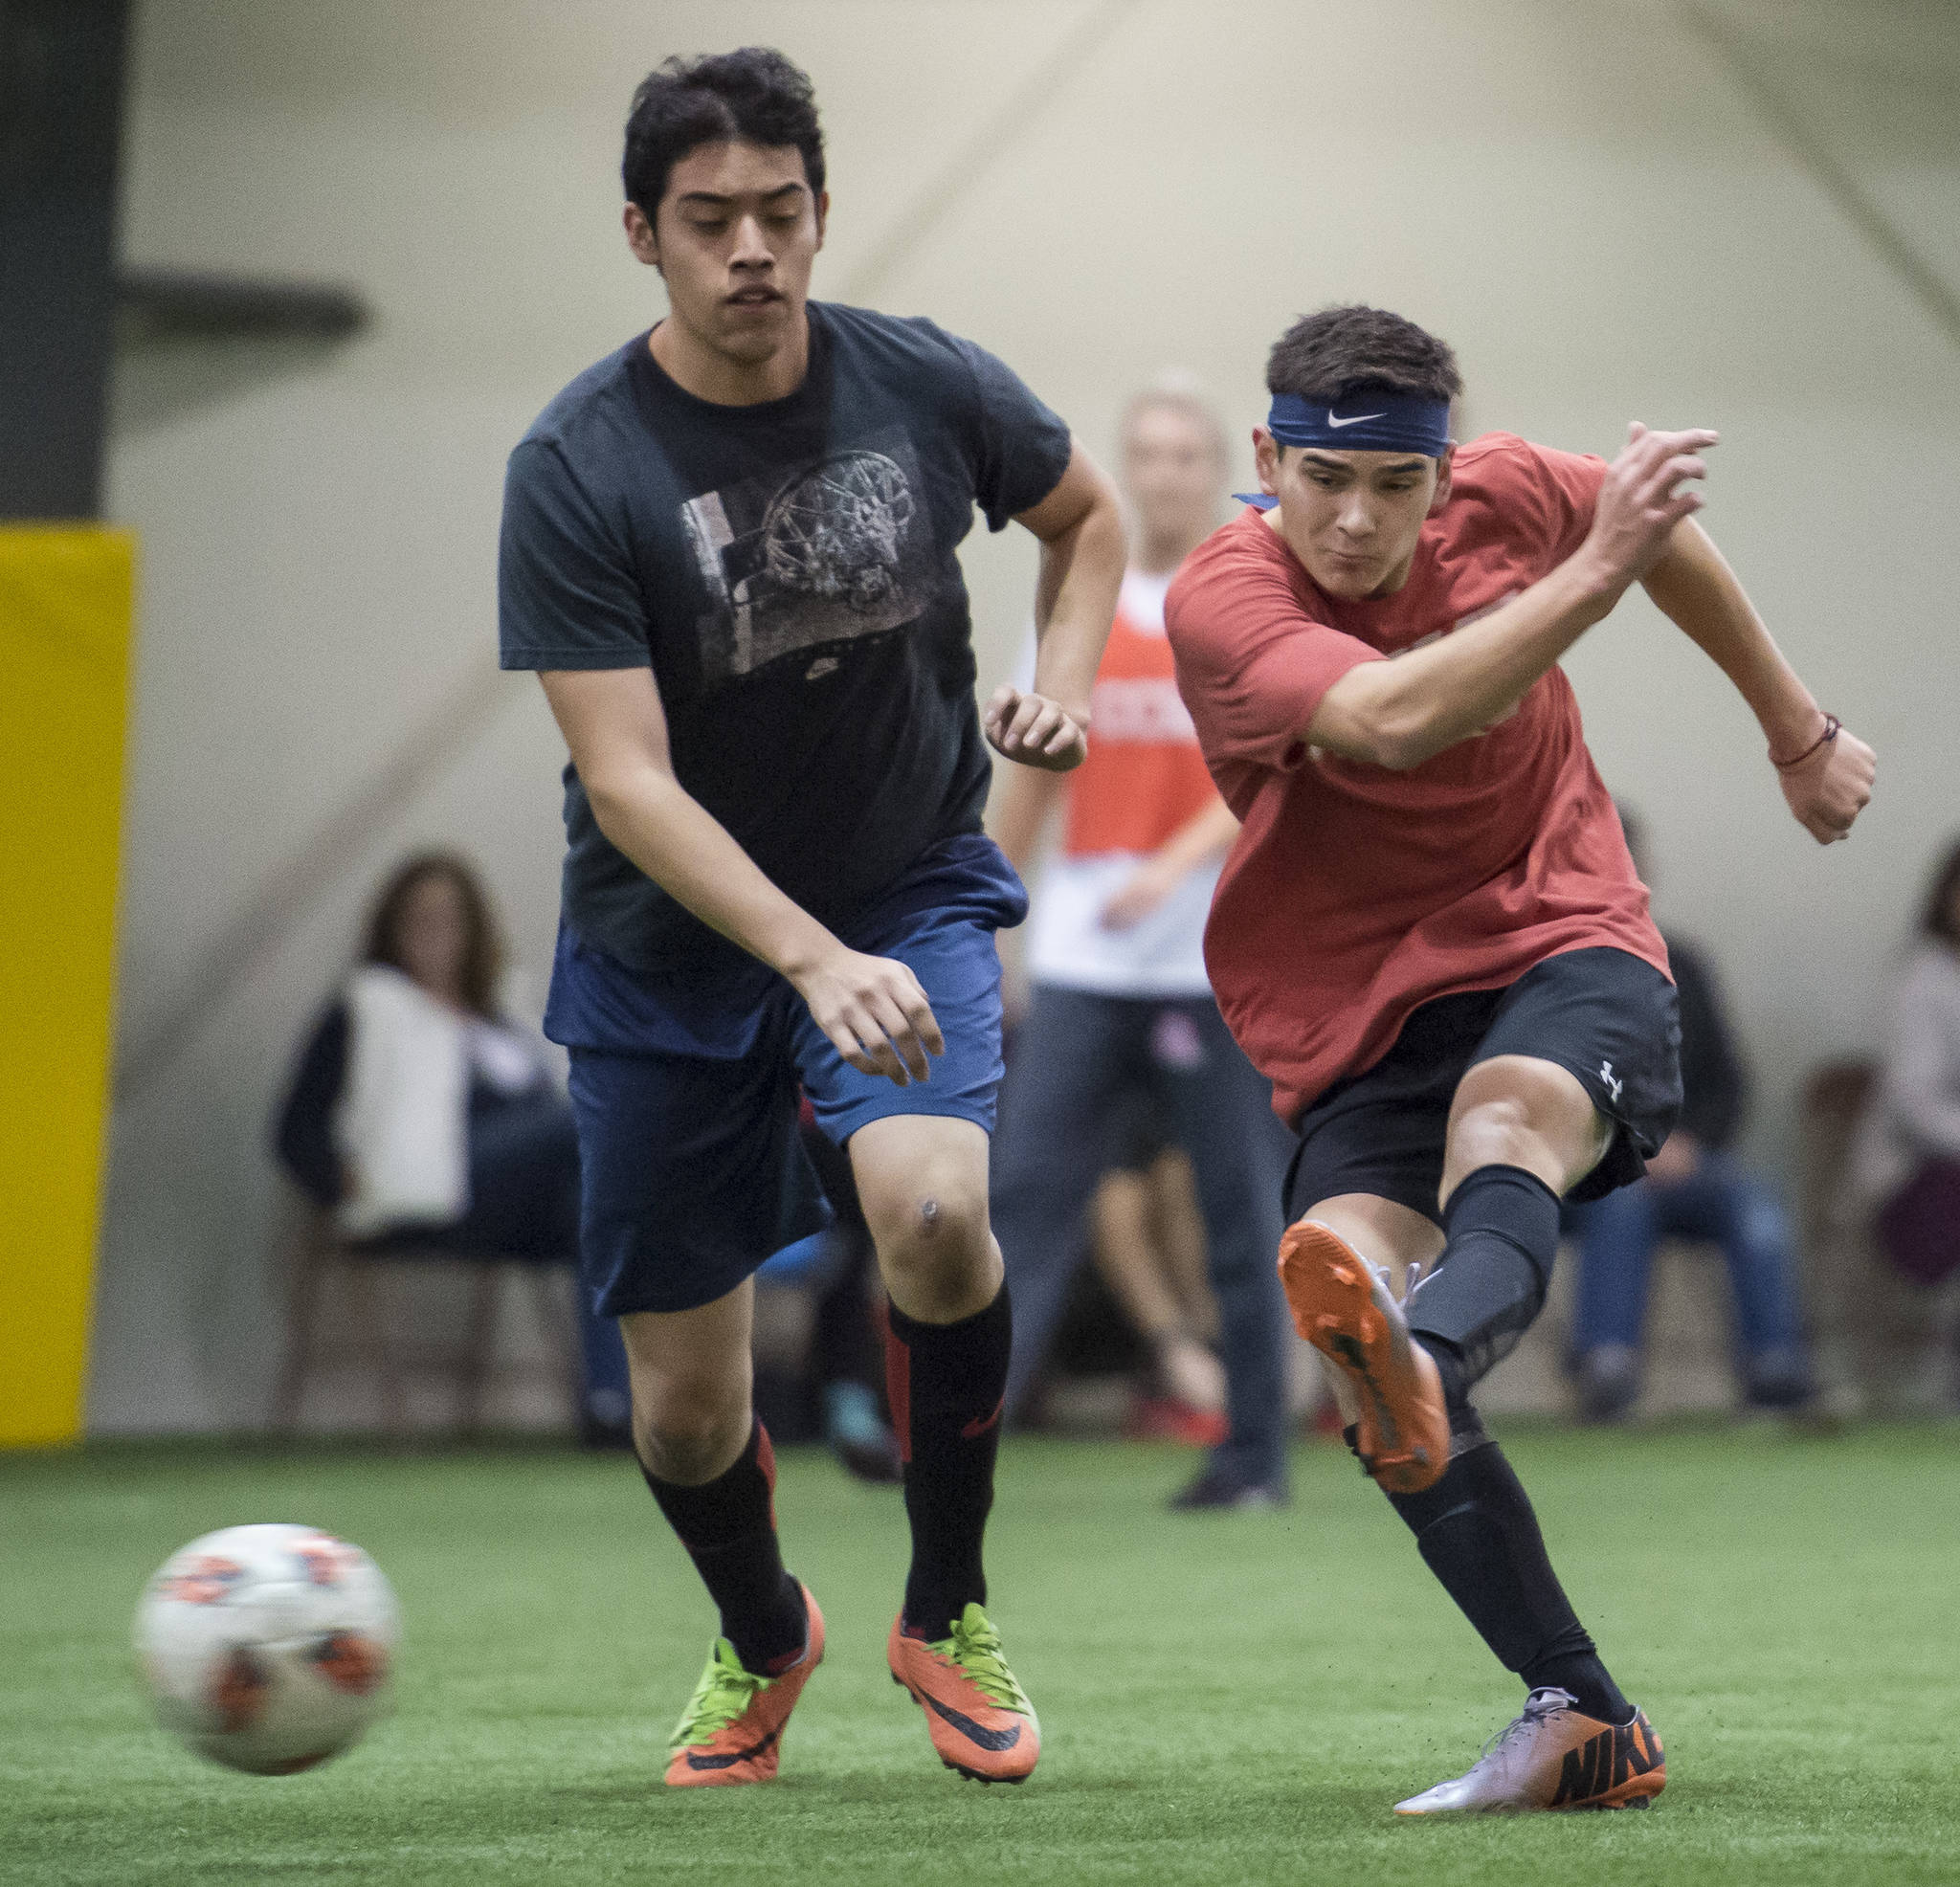 Grinch Gang, red, competes against Black Ice, black, in the finals of the senior division at the annual Holiday Cup Soccer Tournament at the Wells Fargo Dimond Park Field House on Monday, Dec. 31, 2018. The Grinch Gang won 8-2. (Michael Penn | Juneau Empire)